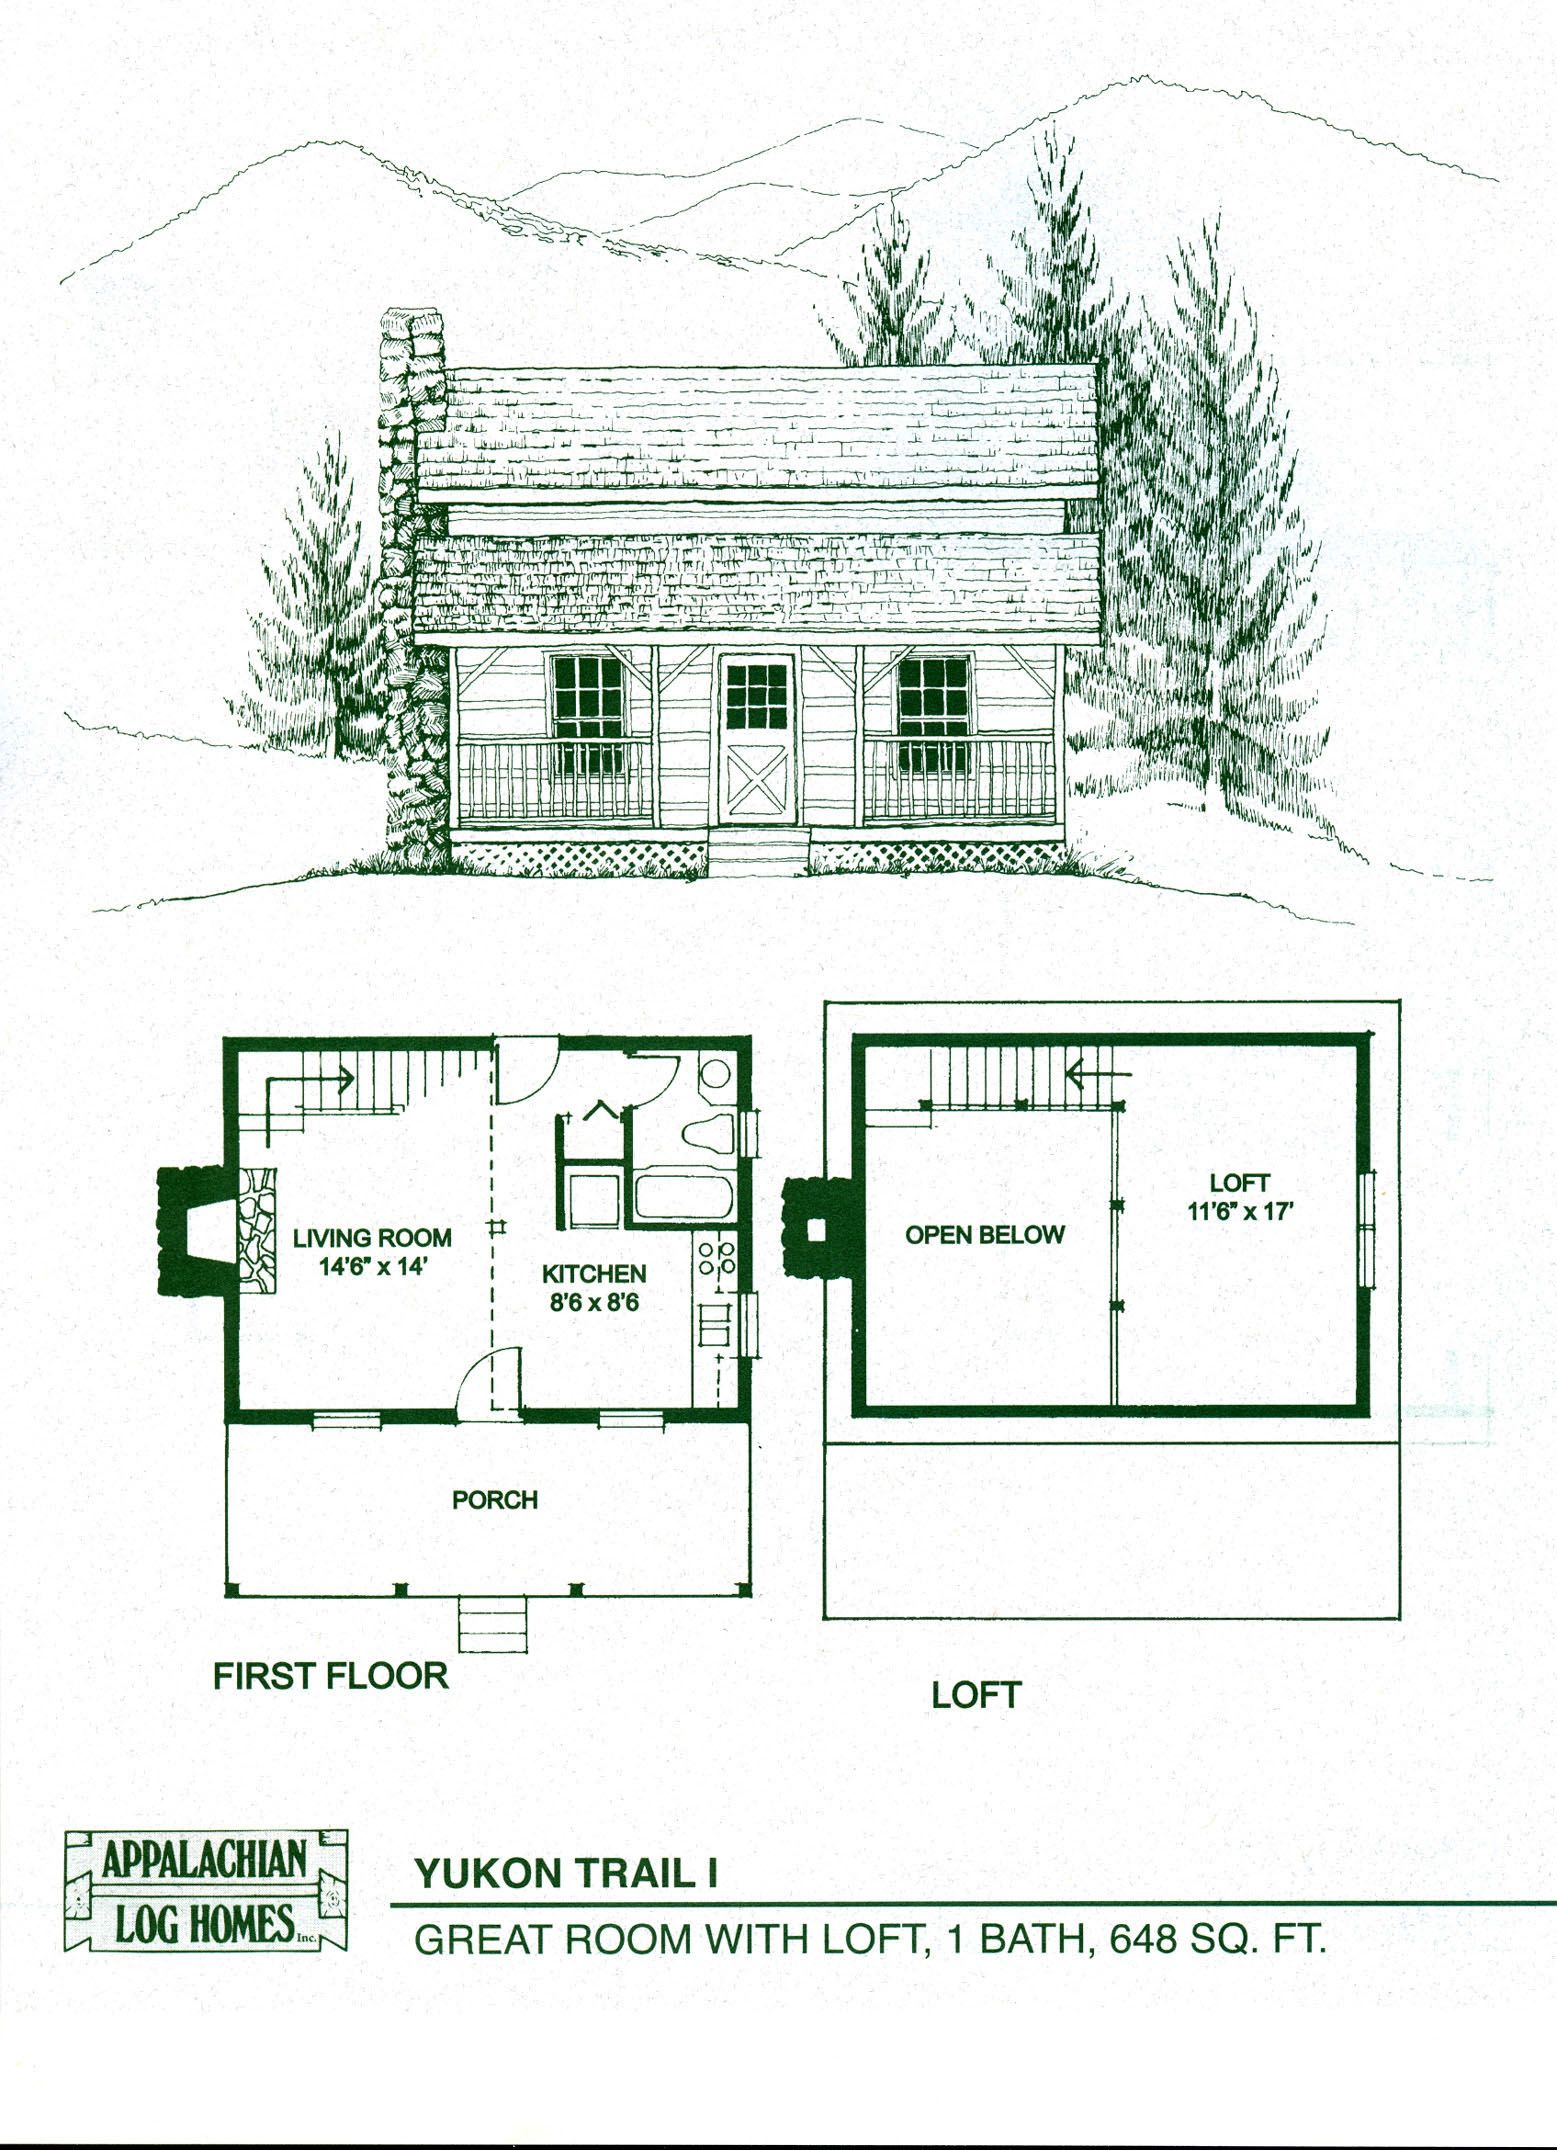 Log home floor plans log cabin kits appalachian log for Small log home plans